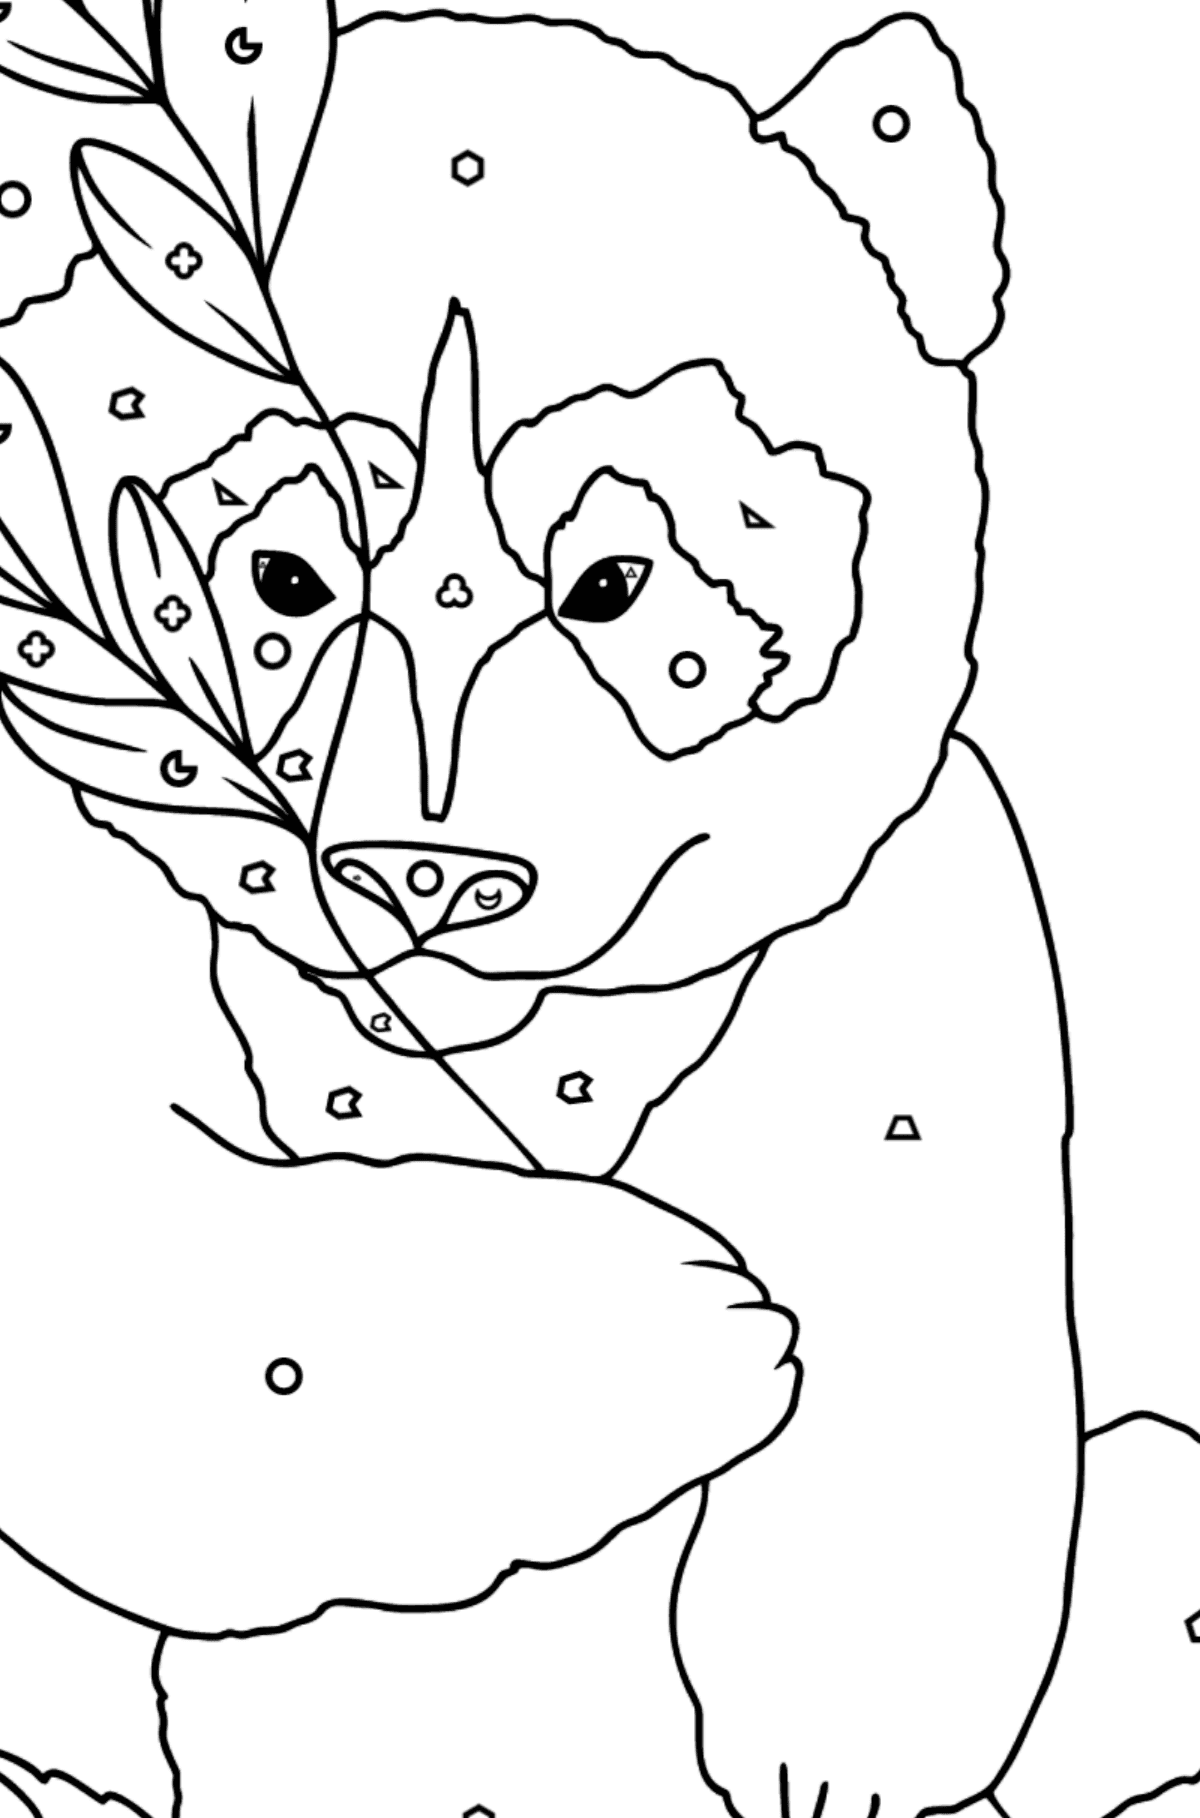 Coloring Page - A Panda is Having a Rest - Coloring by Geometric Shapes for Kids